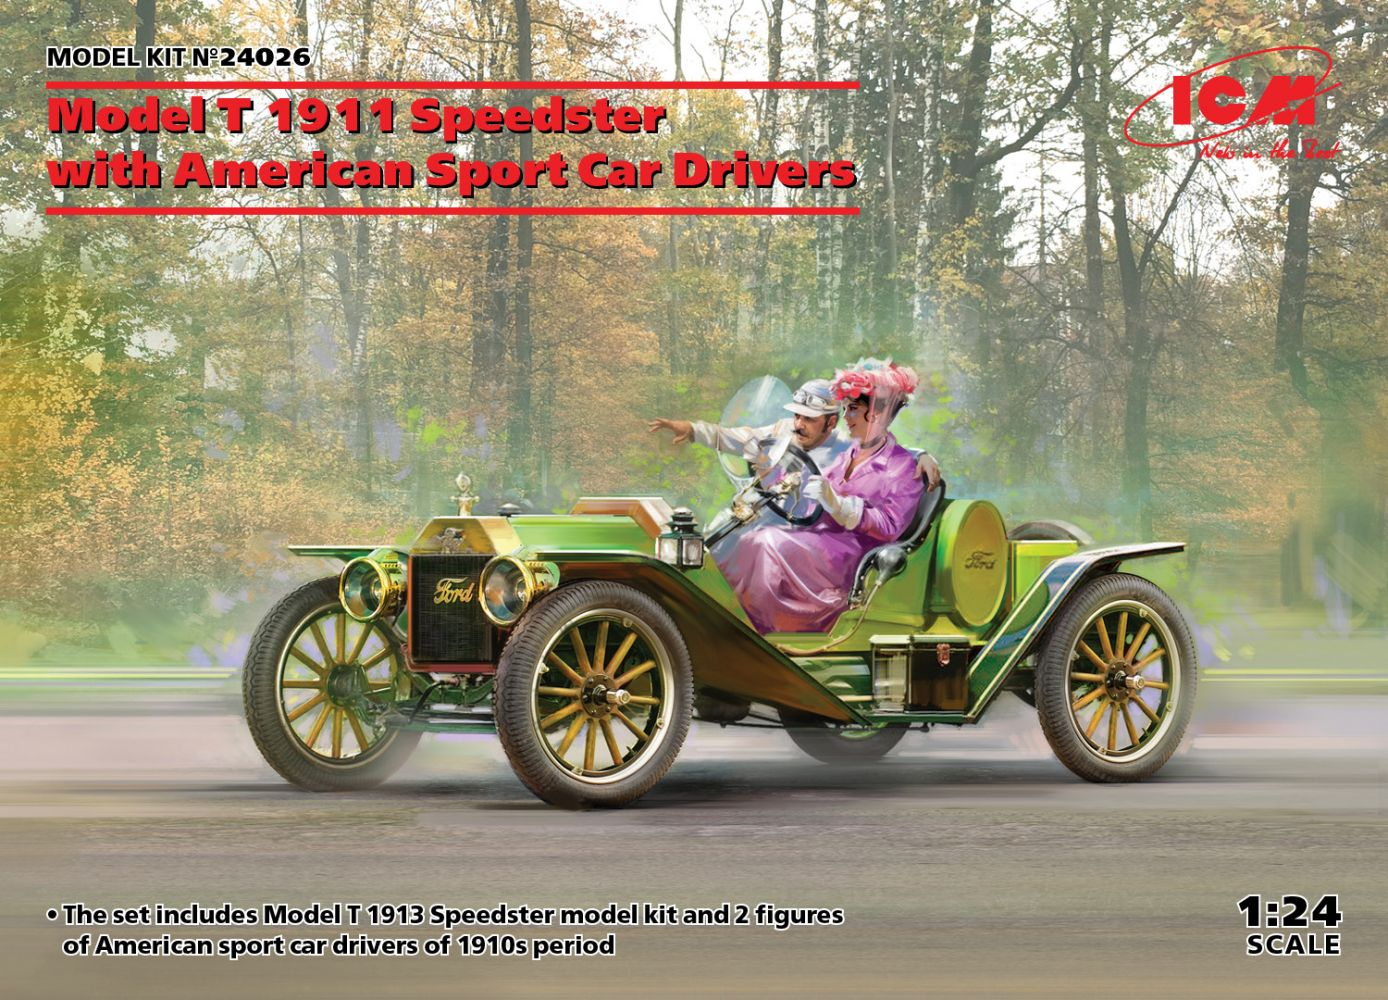 24026 MODEL T 1913 SPEEDSTER WITH AMERICAN SPORT CAR DRIVERS